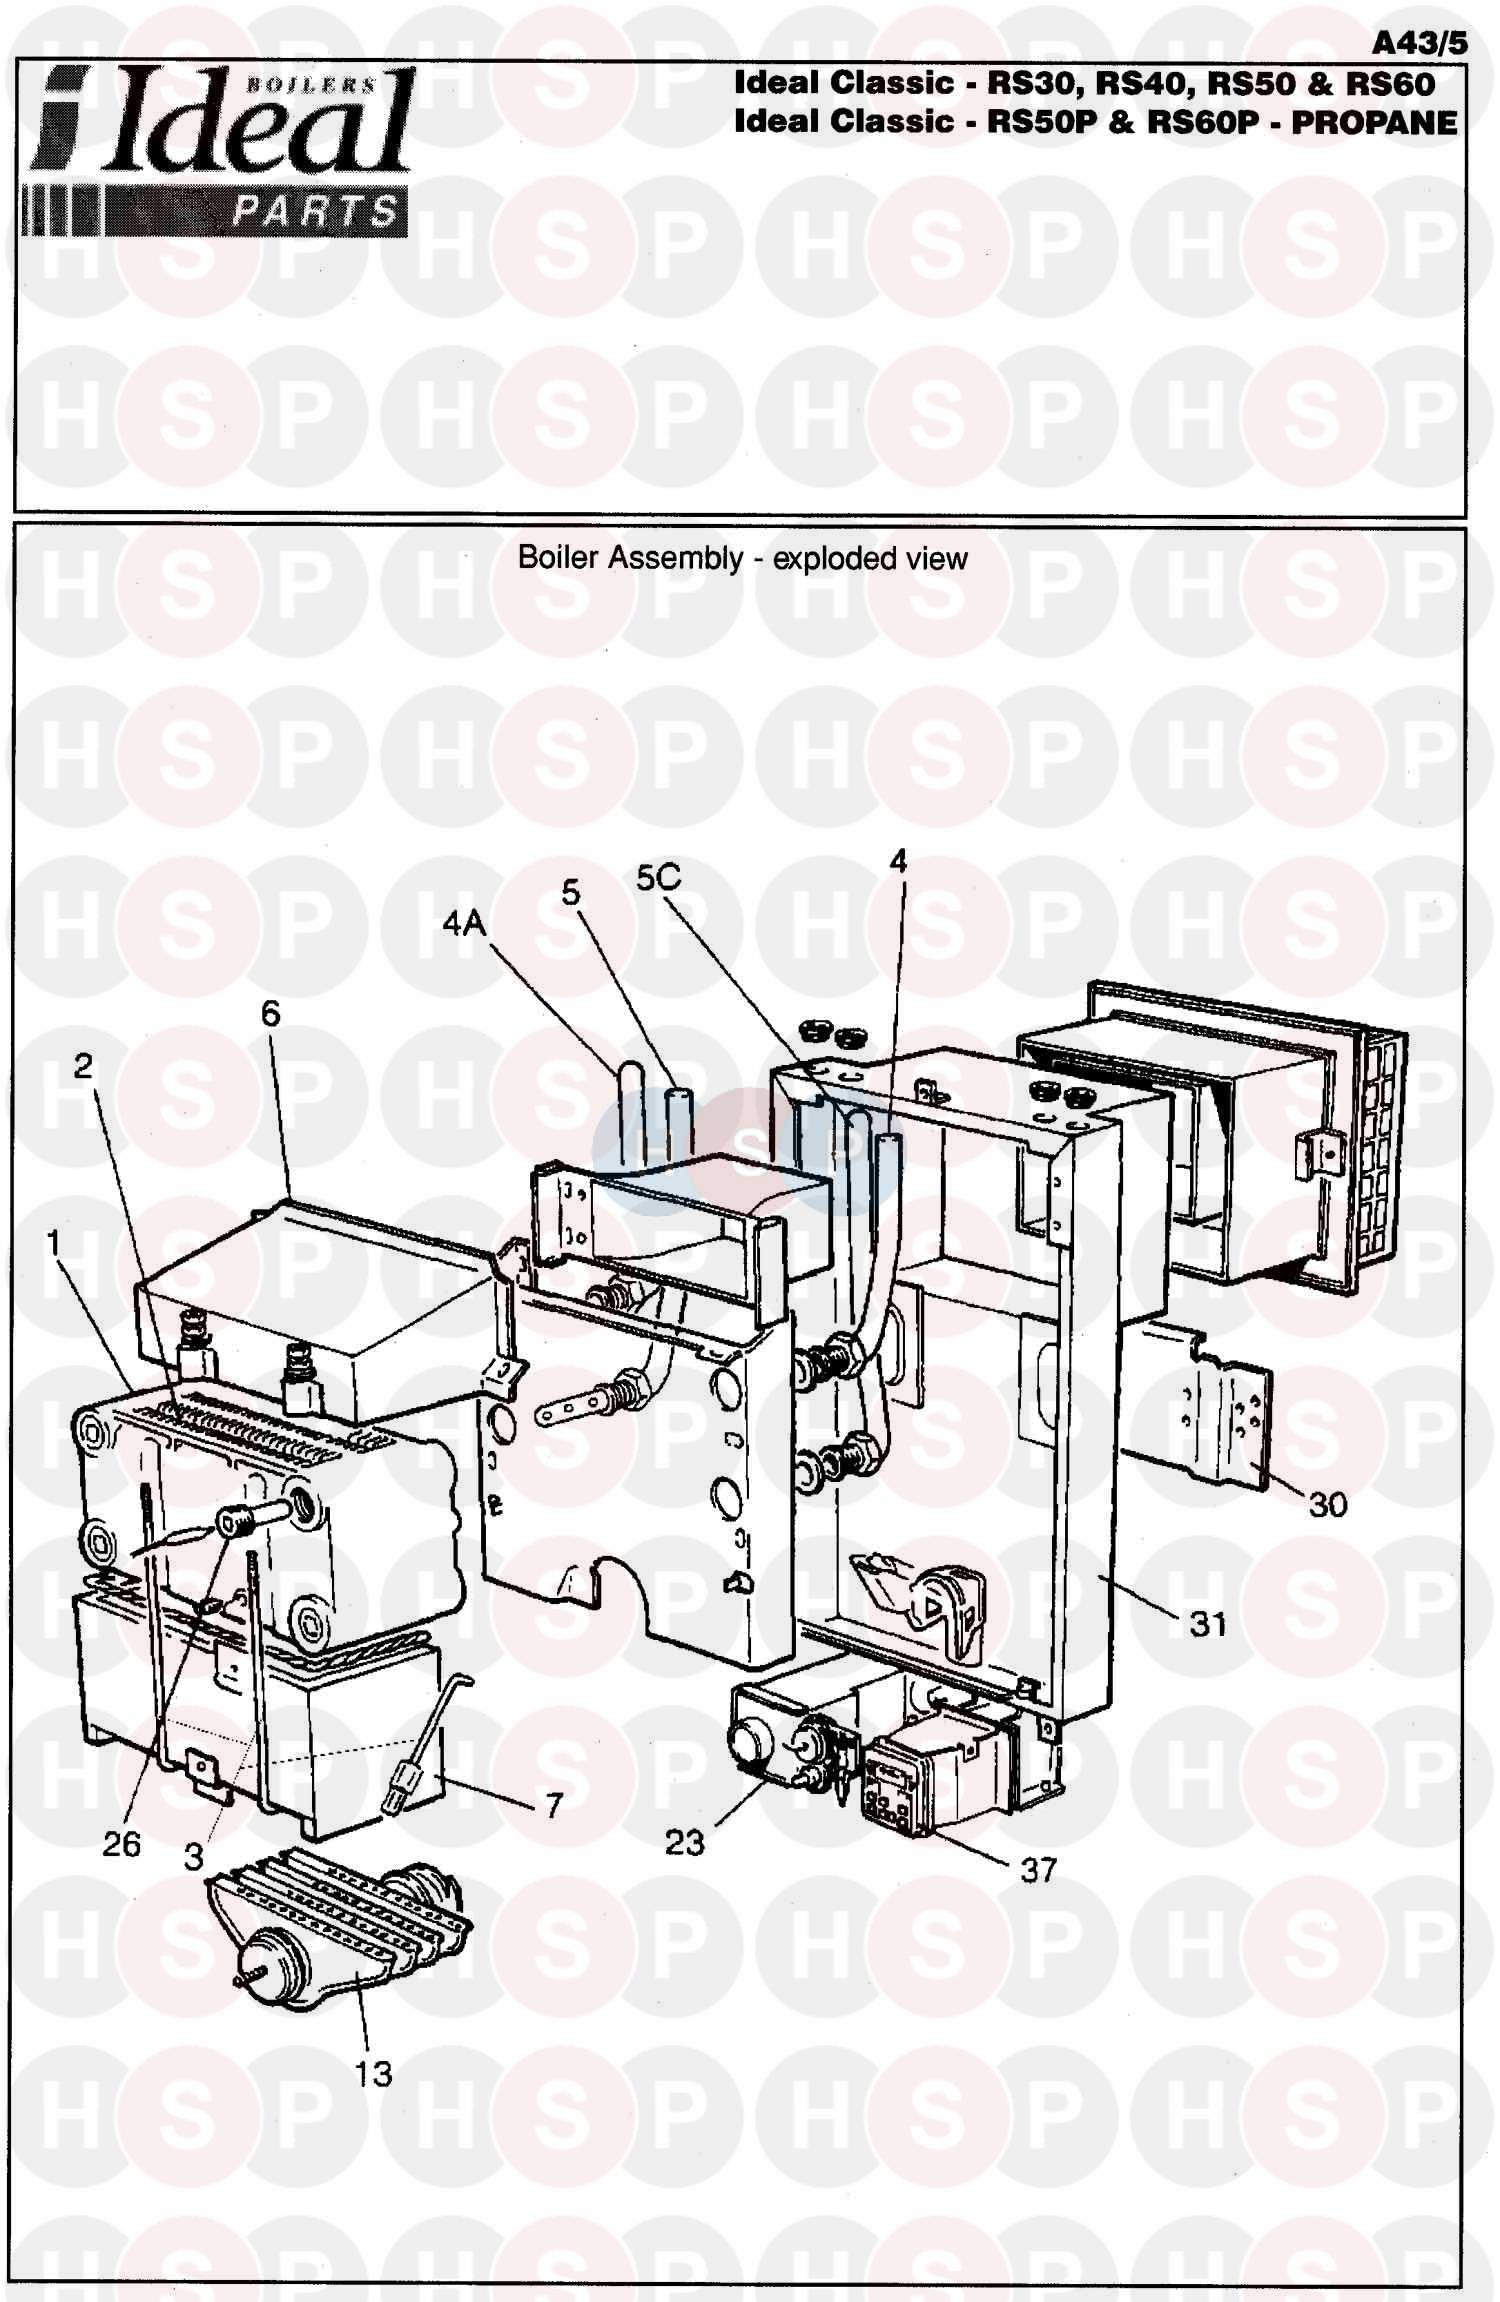 Ideal CLASSIC RS 30 Appliance Diagram (BOILER ASSEMBLY 1